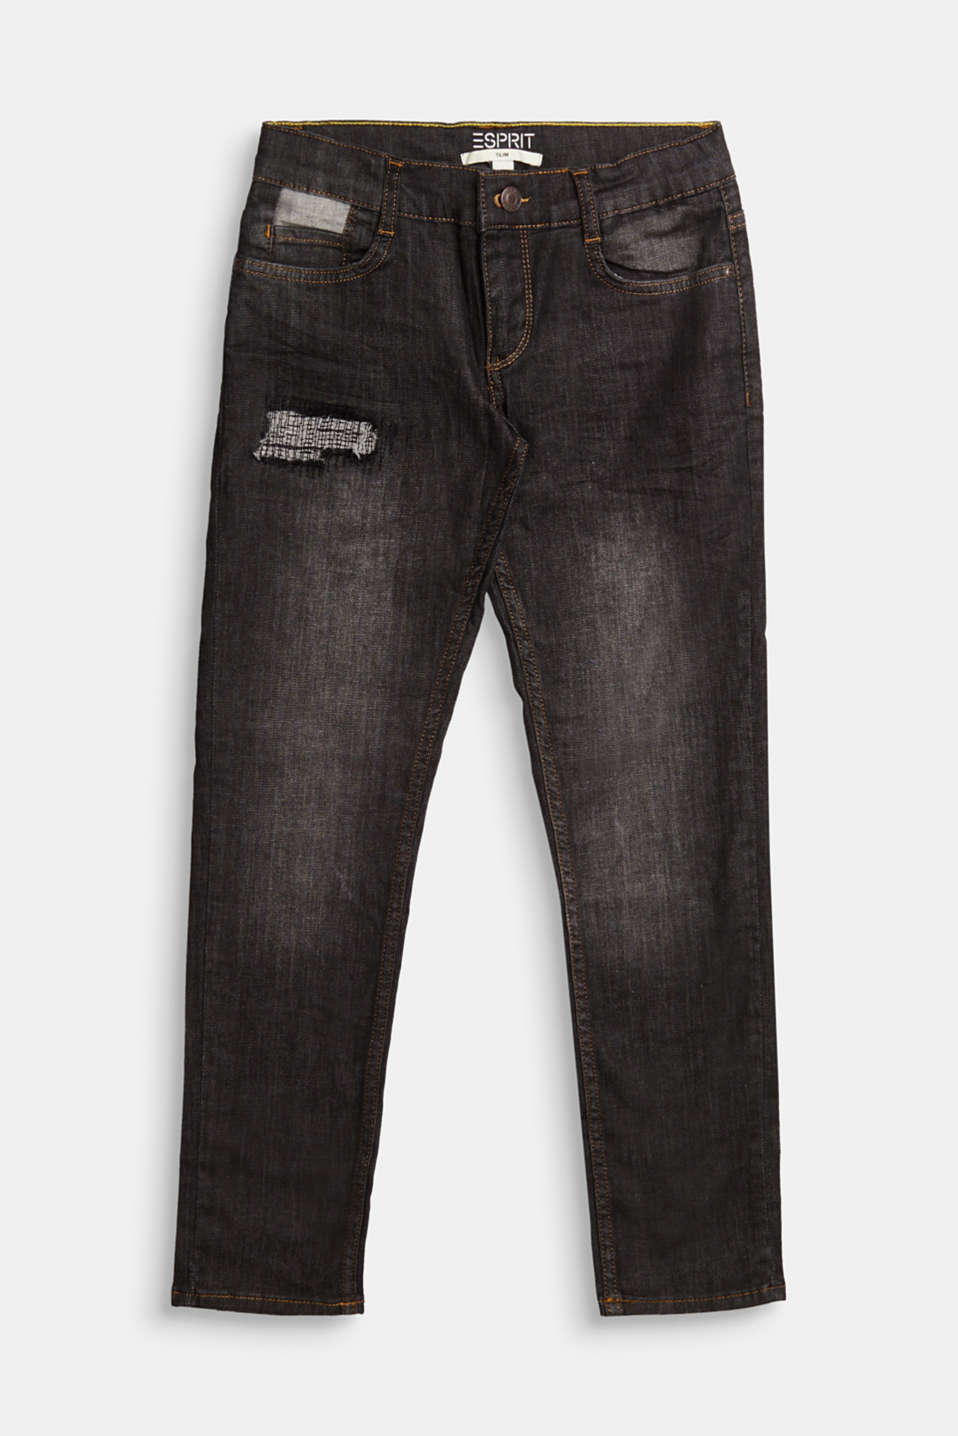 Esprit - Jeans with adjustable waistband and ripped effects